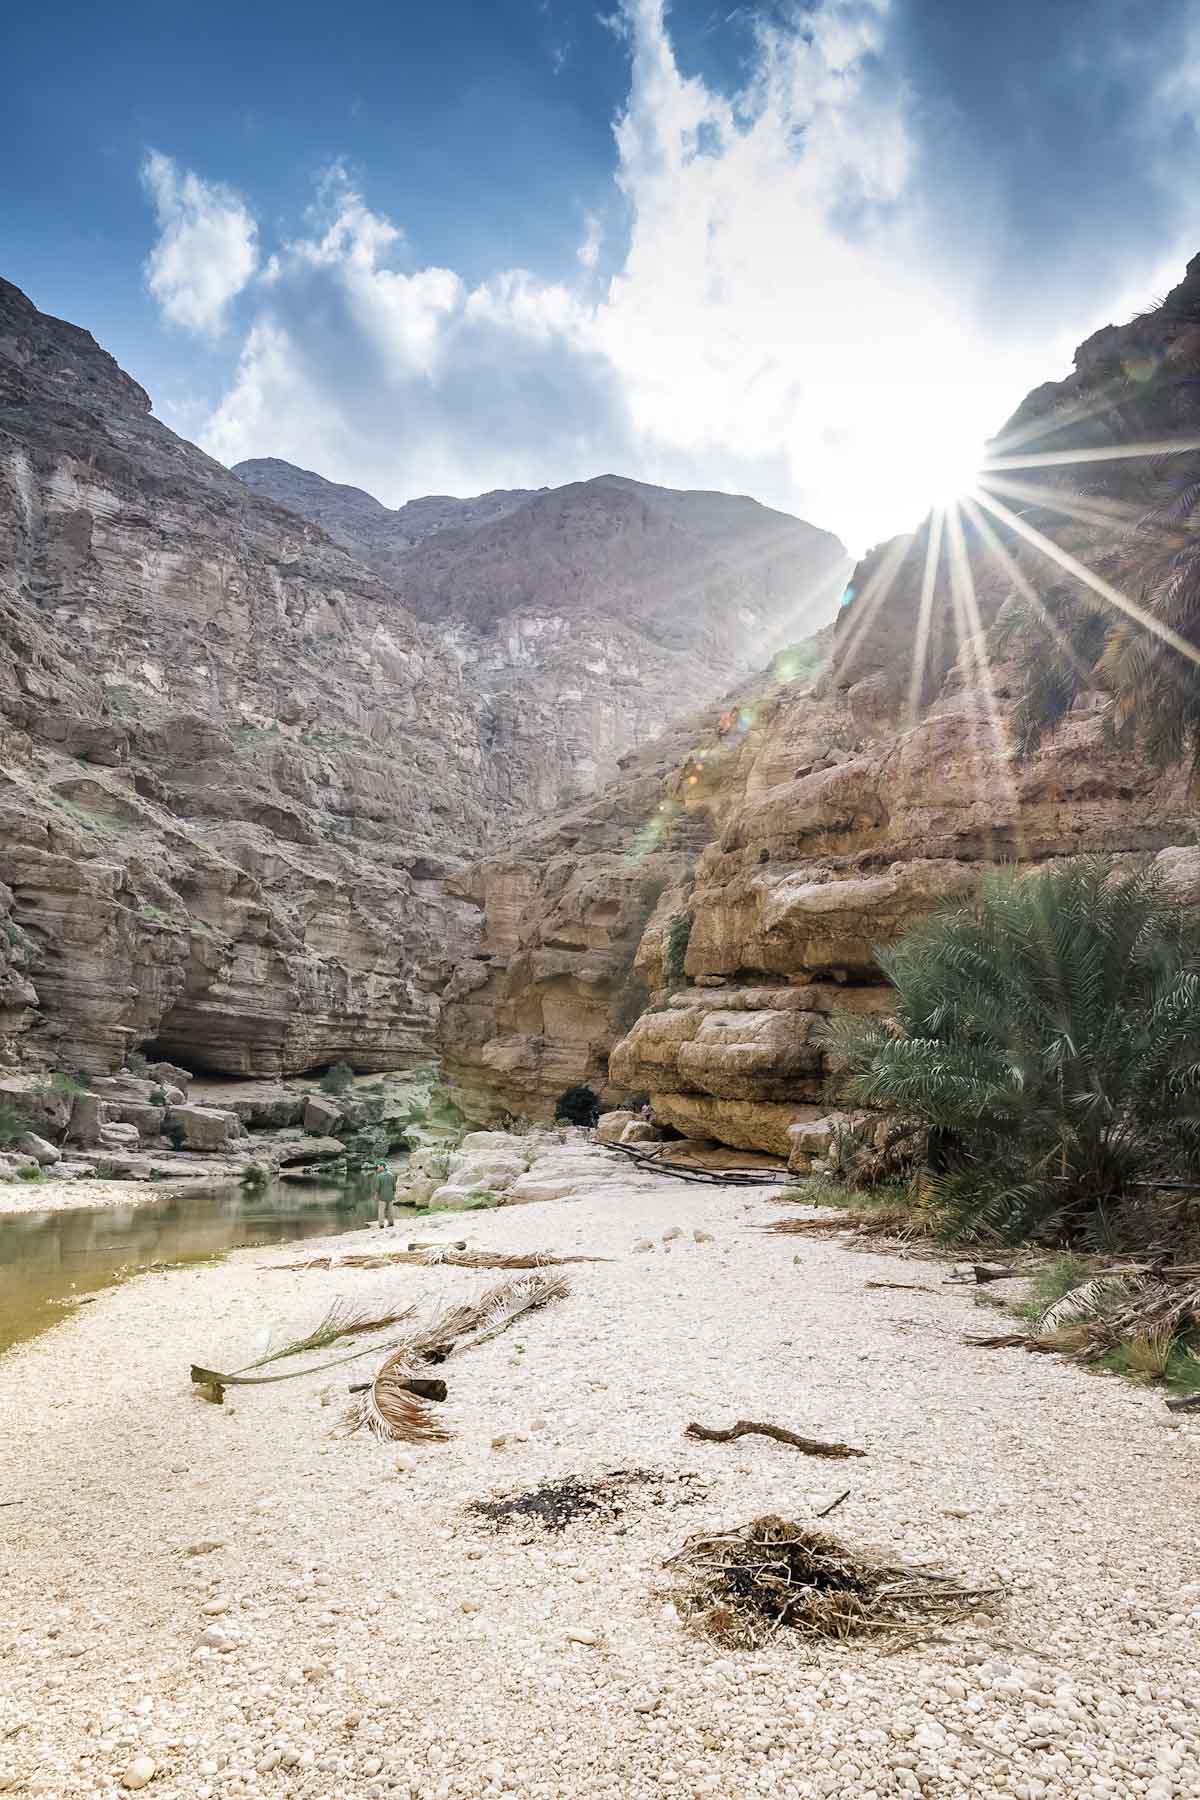 Sun Peaking through the mountains at Wadi Shab Oman - The Travel Escape